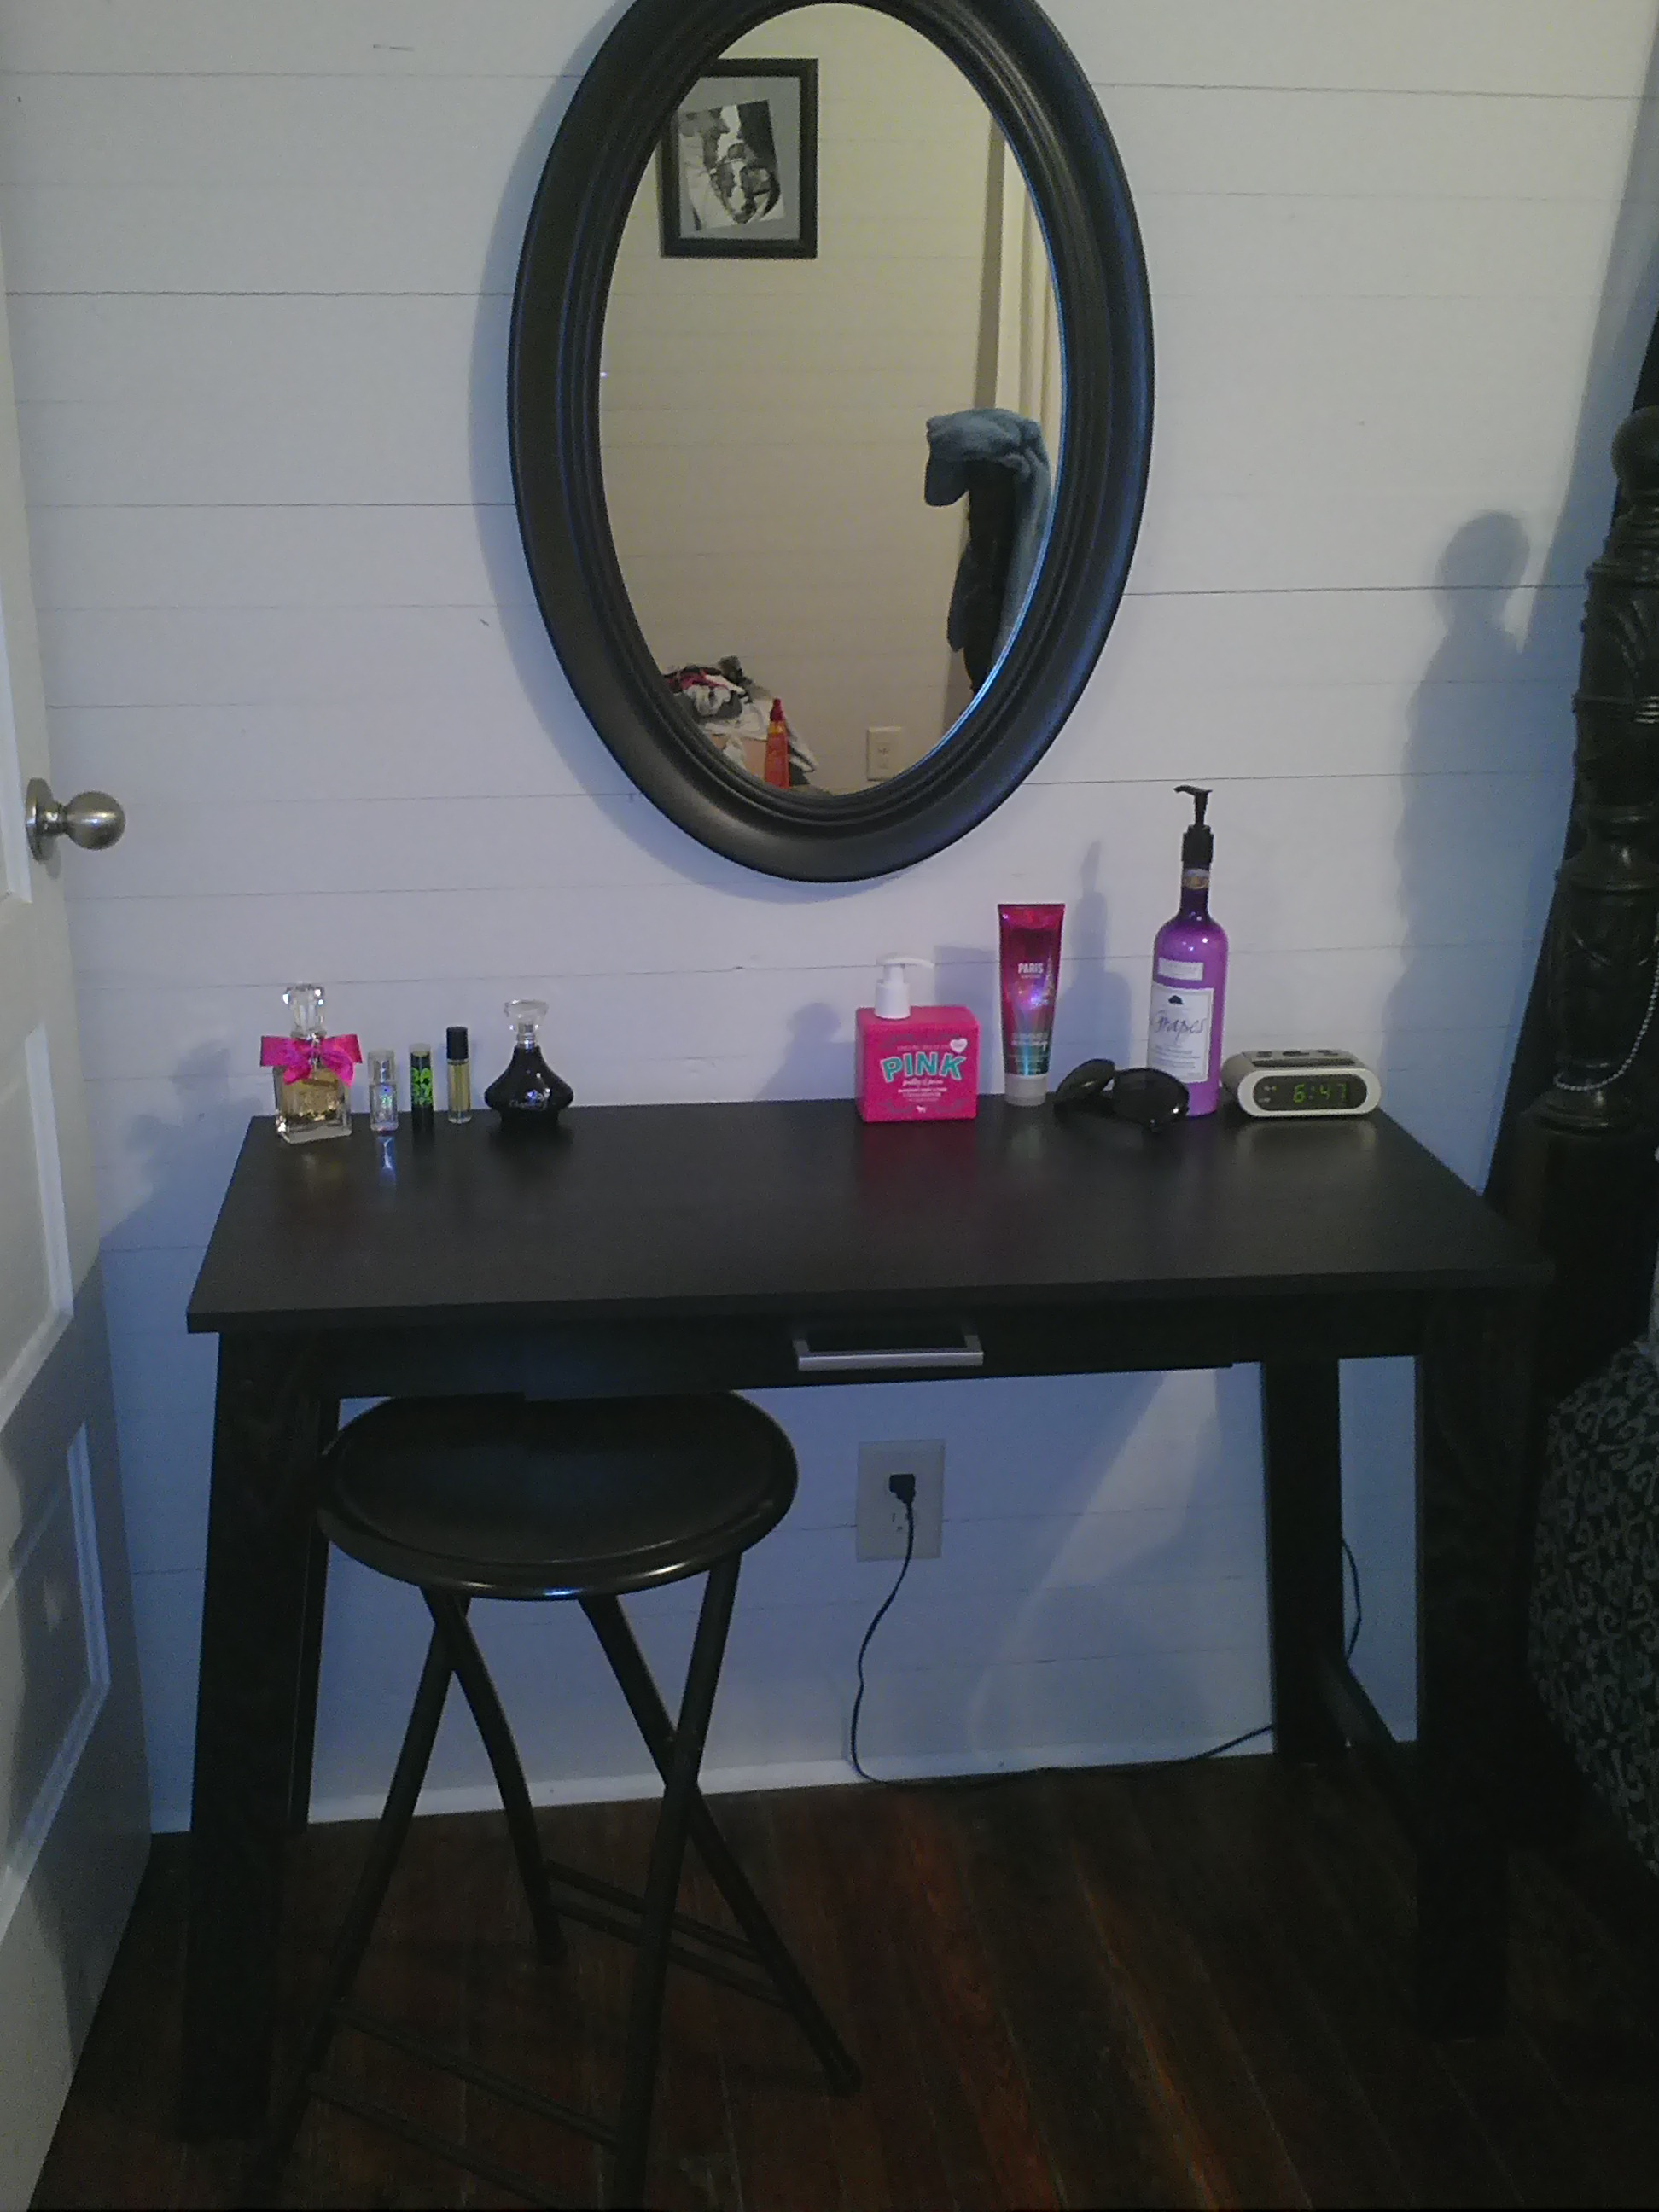 Diy Vanity Writing Table From Walmart 50 And Mirror To Hang Above Walmart Diy Diy Vanity Vanity Table